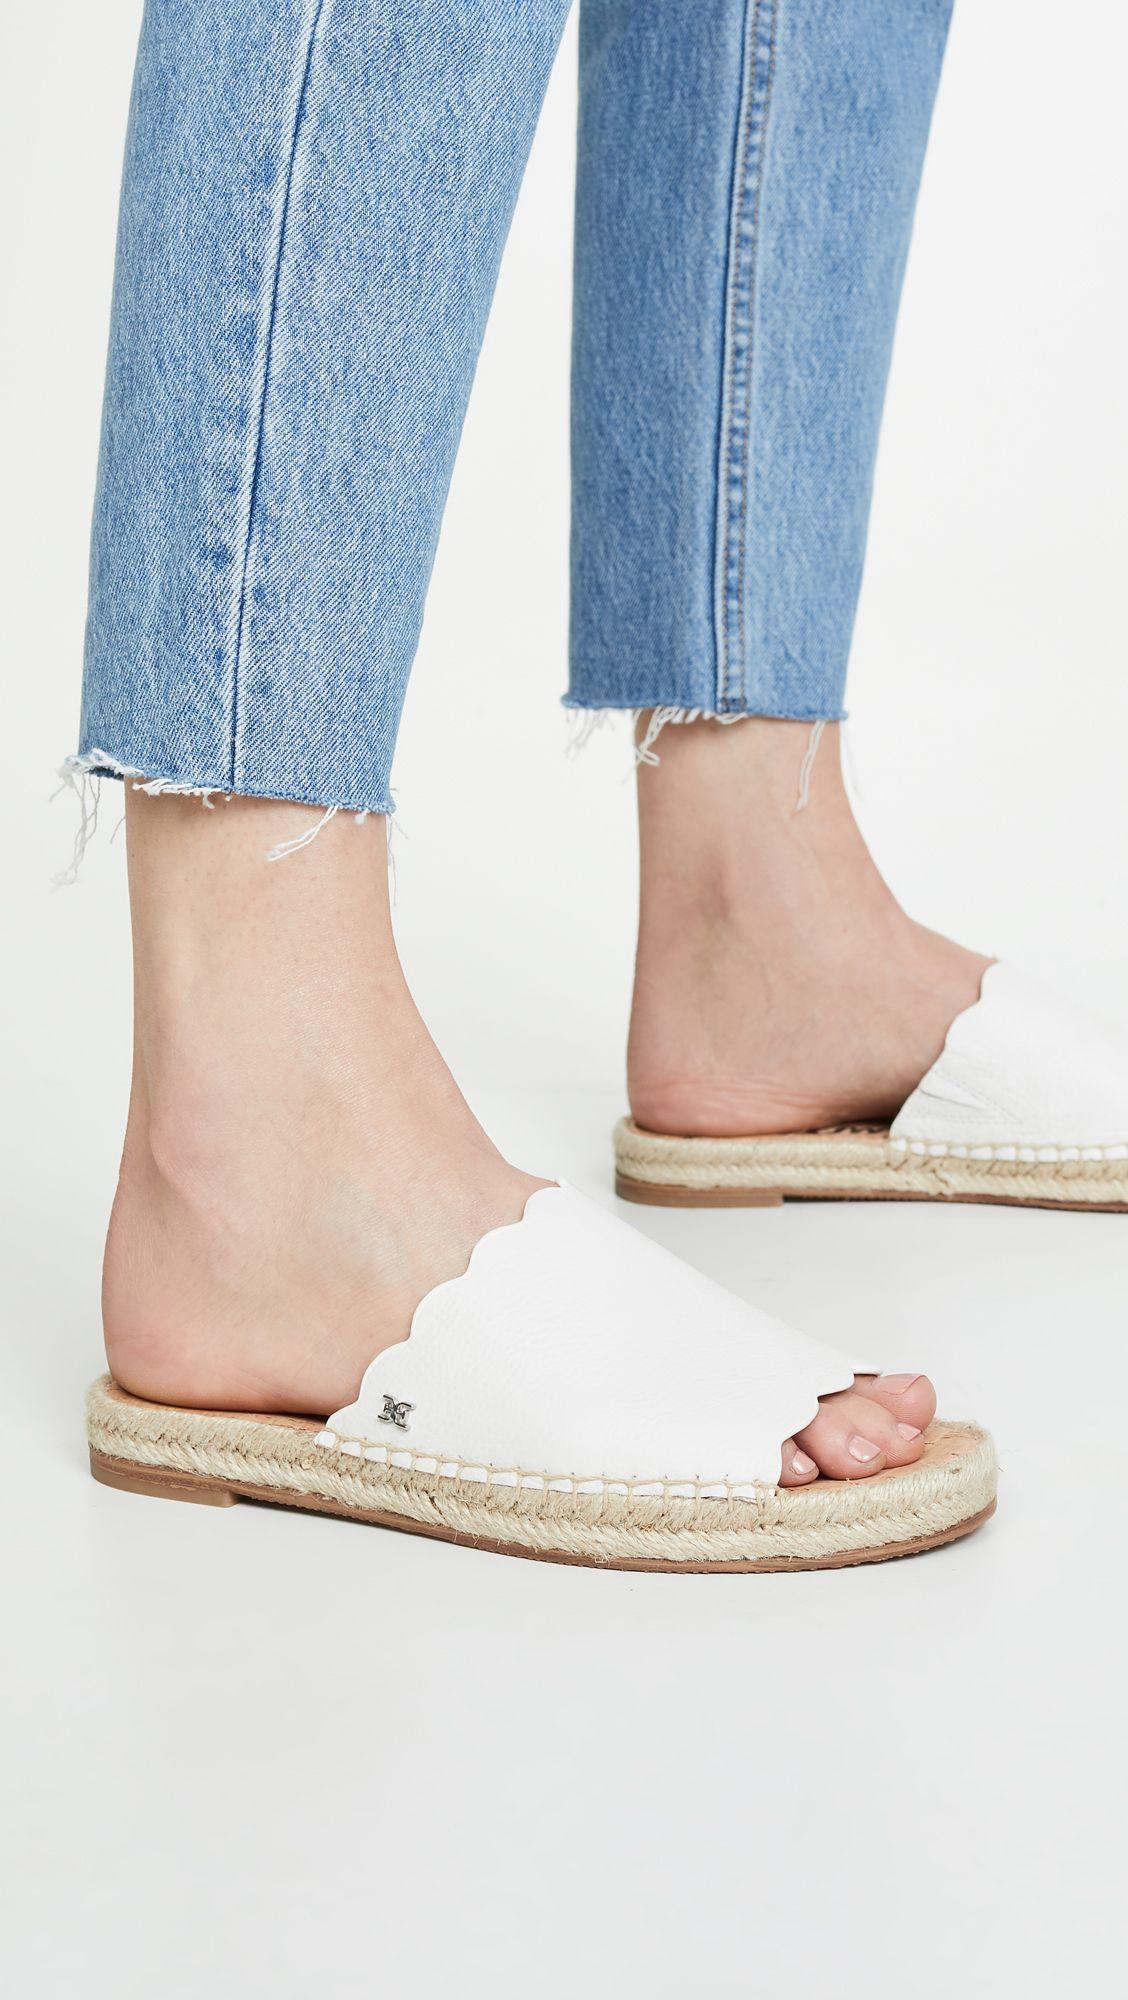 b4099525fa1 Andy Espadrilles in 2019 | The Best Espadrilles To Match Your Style ...